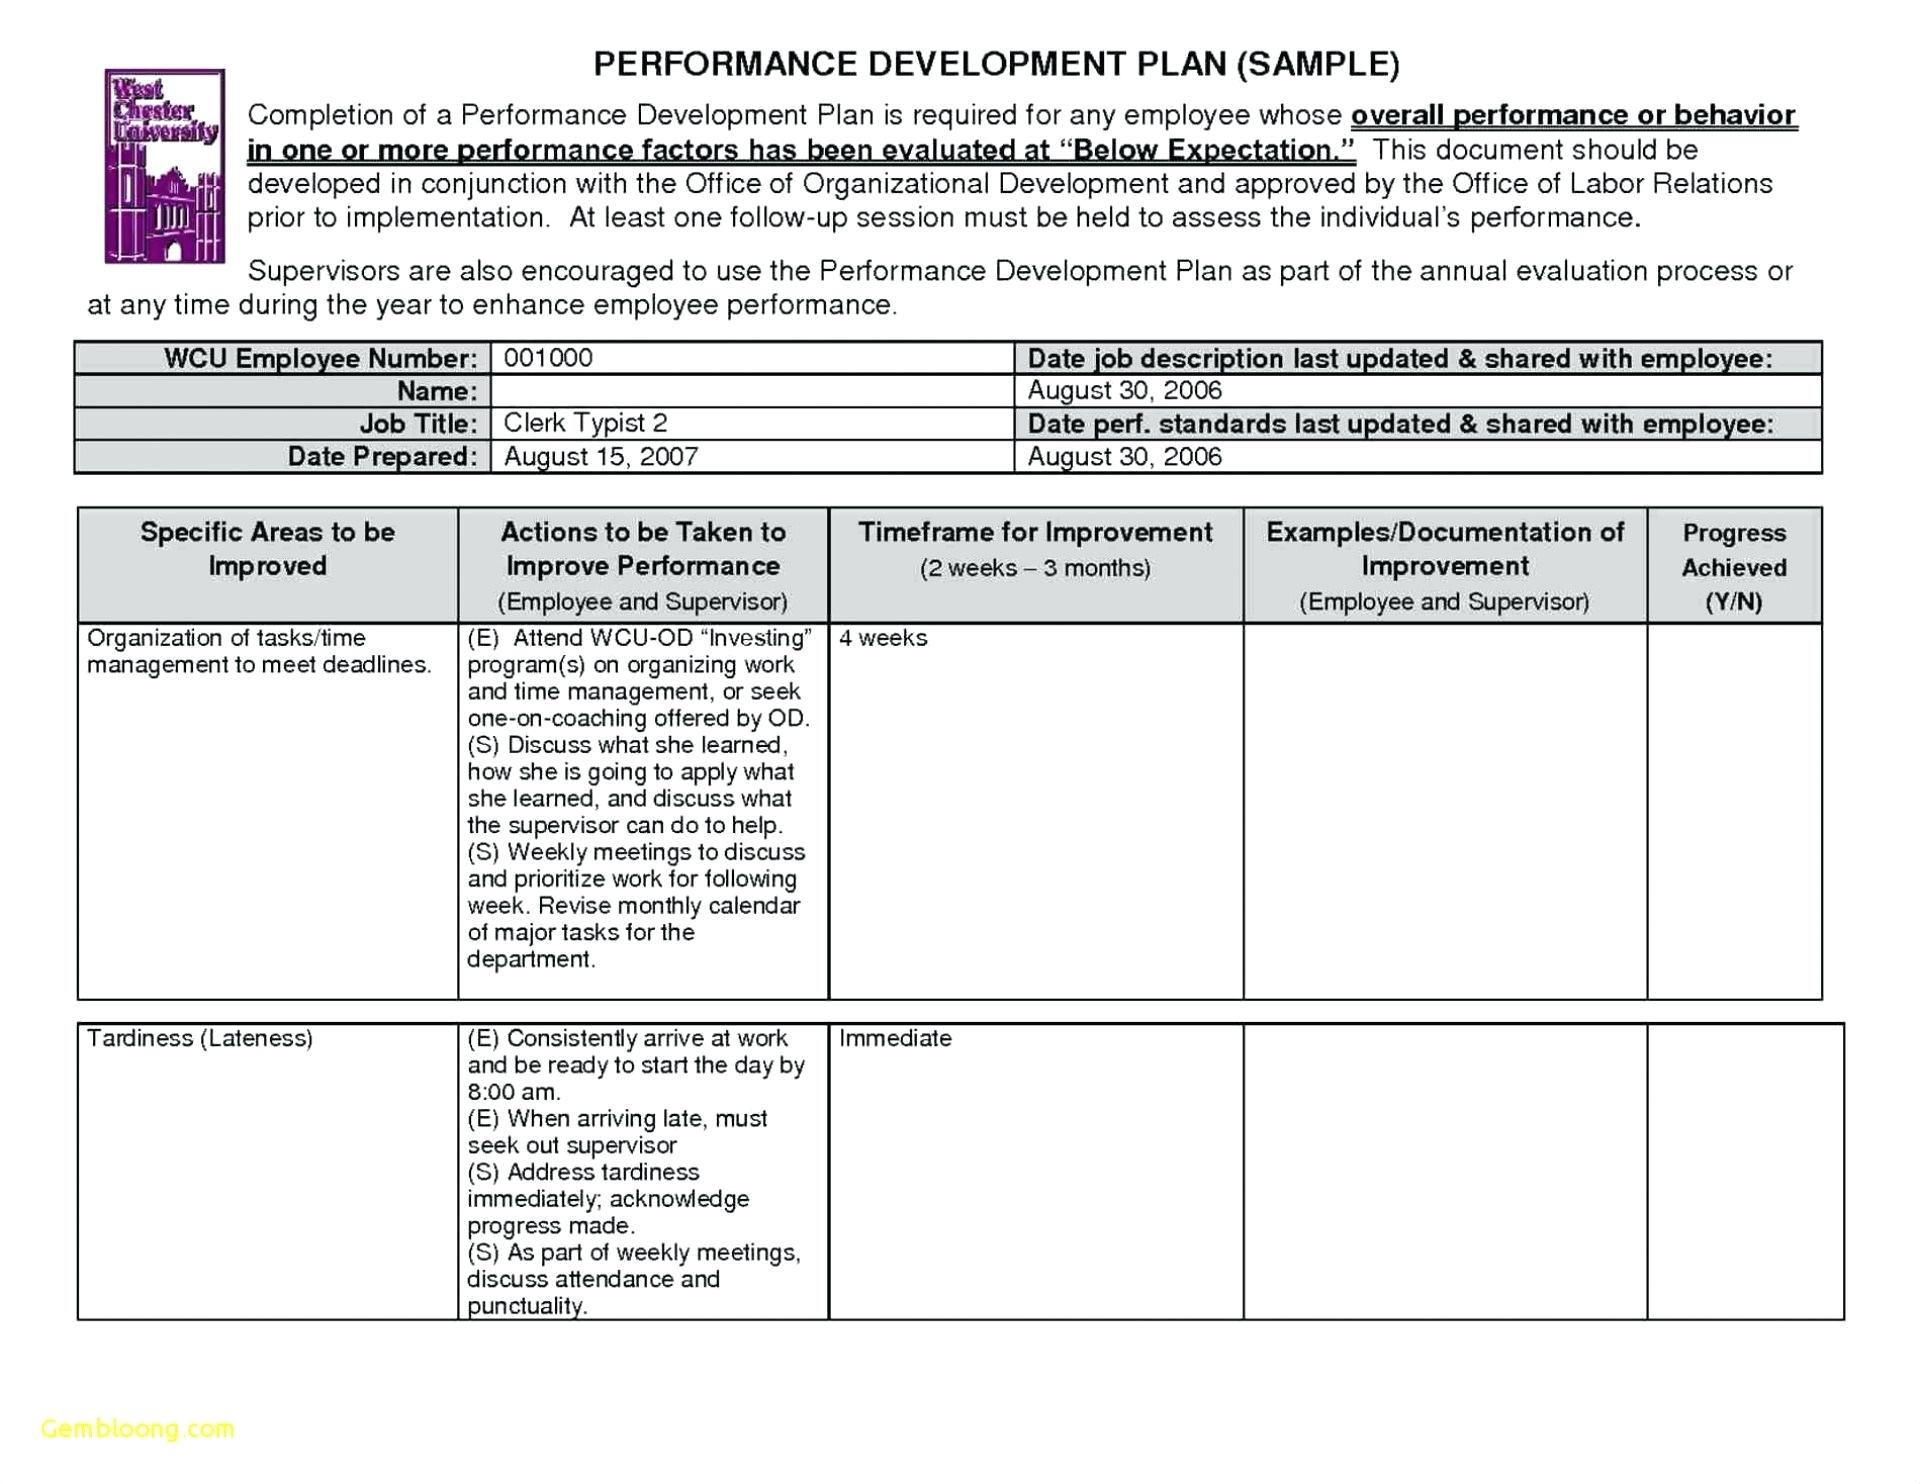 019 Lesson Plans Template For Preschool Week As Of Business with regard to Preschool Monthly Calendar Template